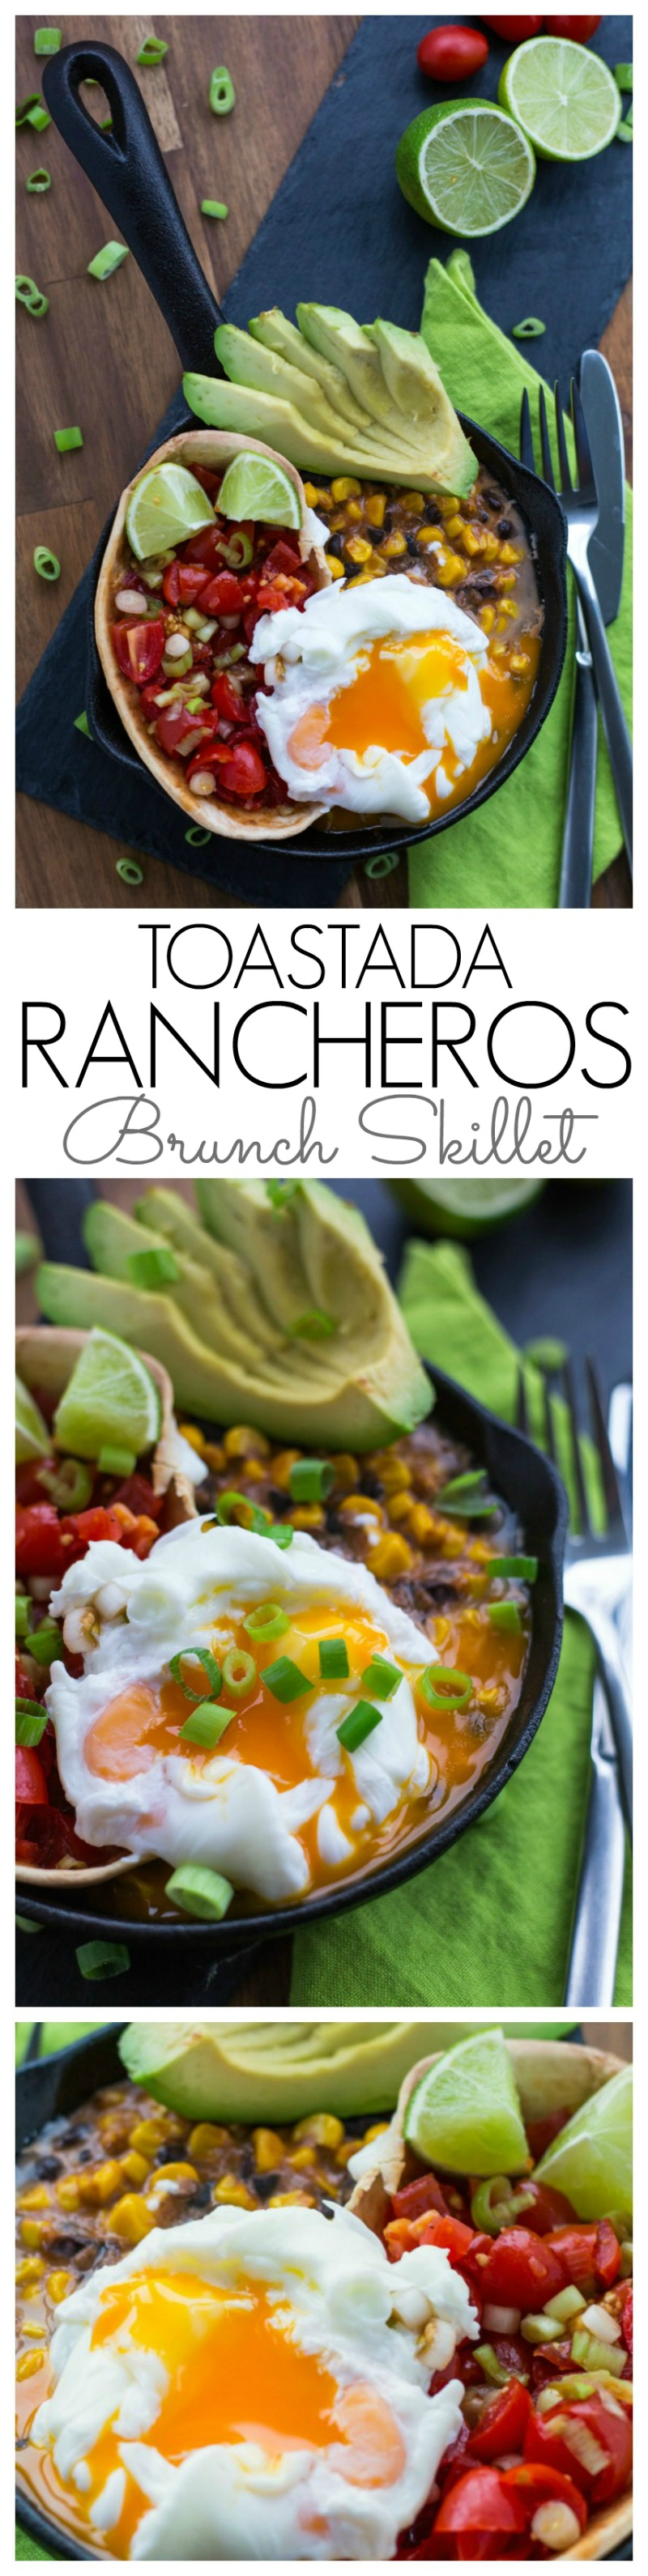 A filling and nutritious brunch. Creamy, fresh and crunchy and a little heat. This Tostada Rancheros Skillet is brunch heaven!